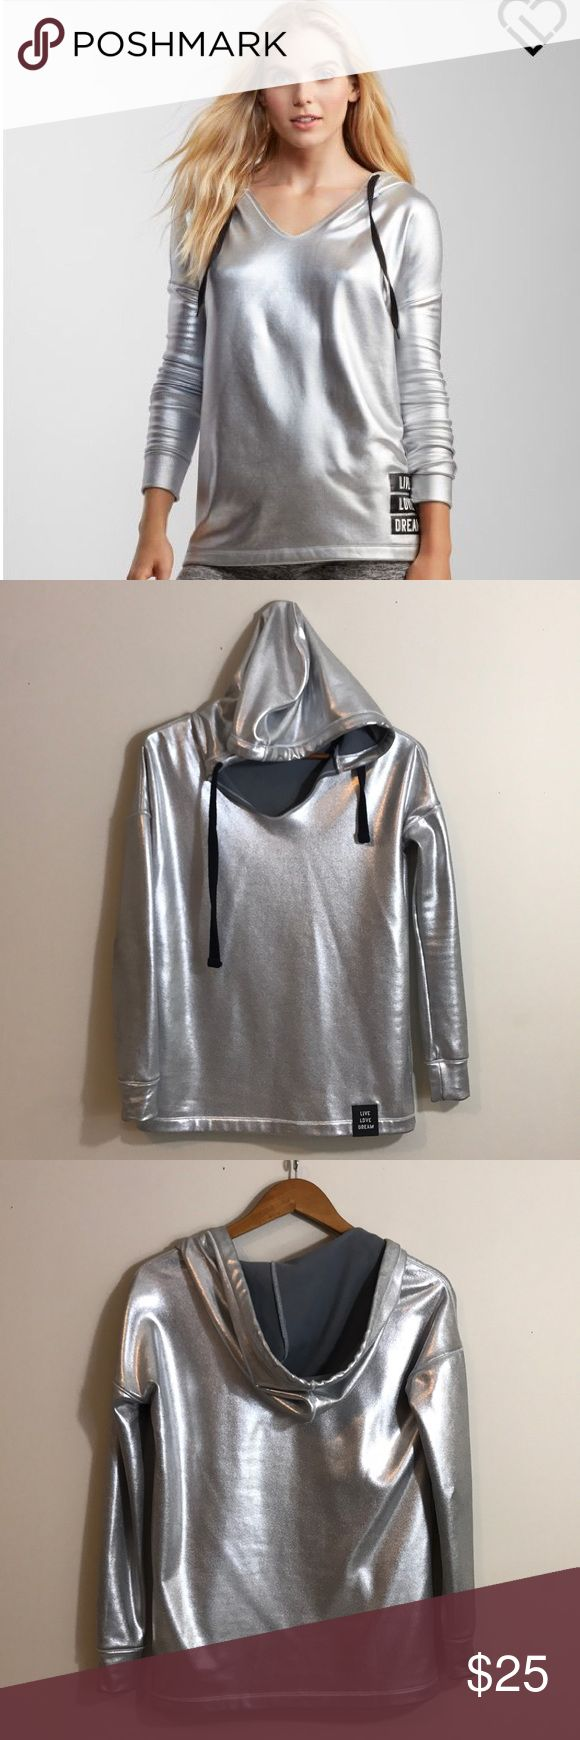 [Aeropostale] Metallic Hoodie Size XS, excellent condition, has a slight snag as shown in last picture but hardly noticeable especially when it's on. Aeropostale Tops Sweatshirts & Hoodies